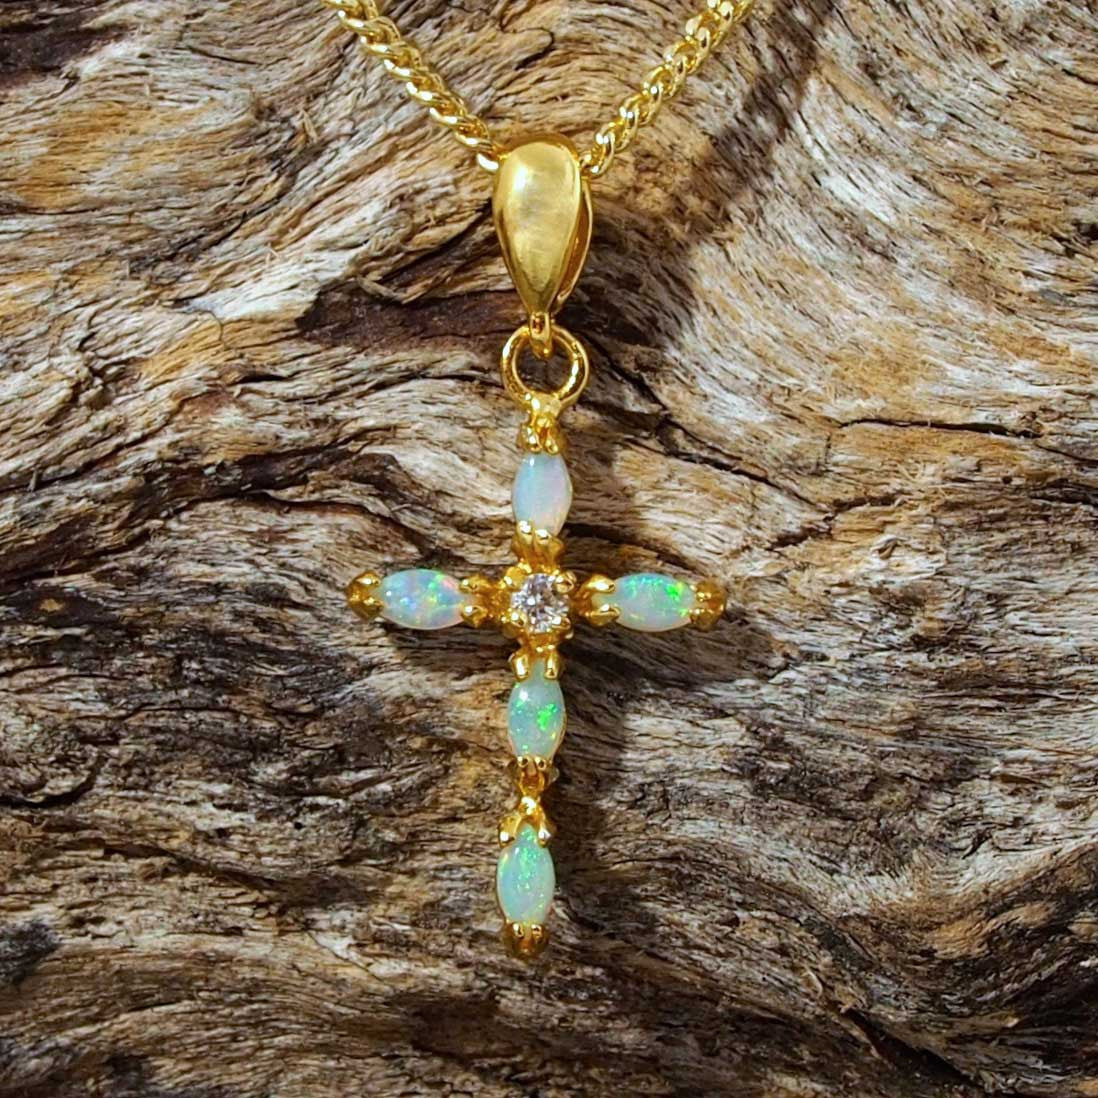 Opal cross necklace pendant claw set with 5 crystal opals and a cubic zirconia.